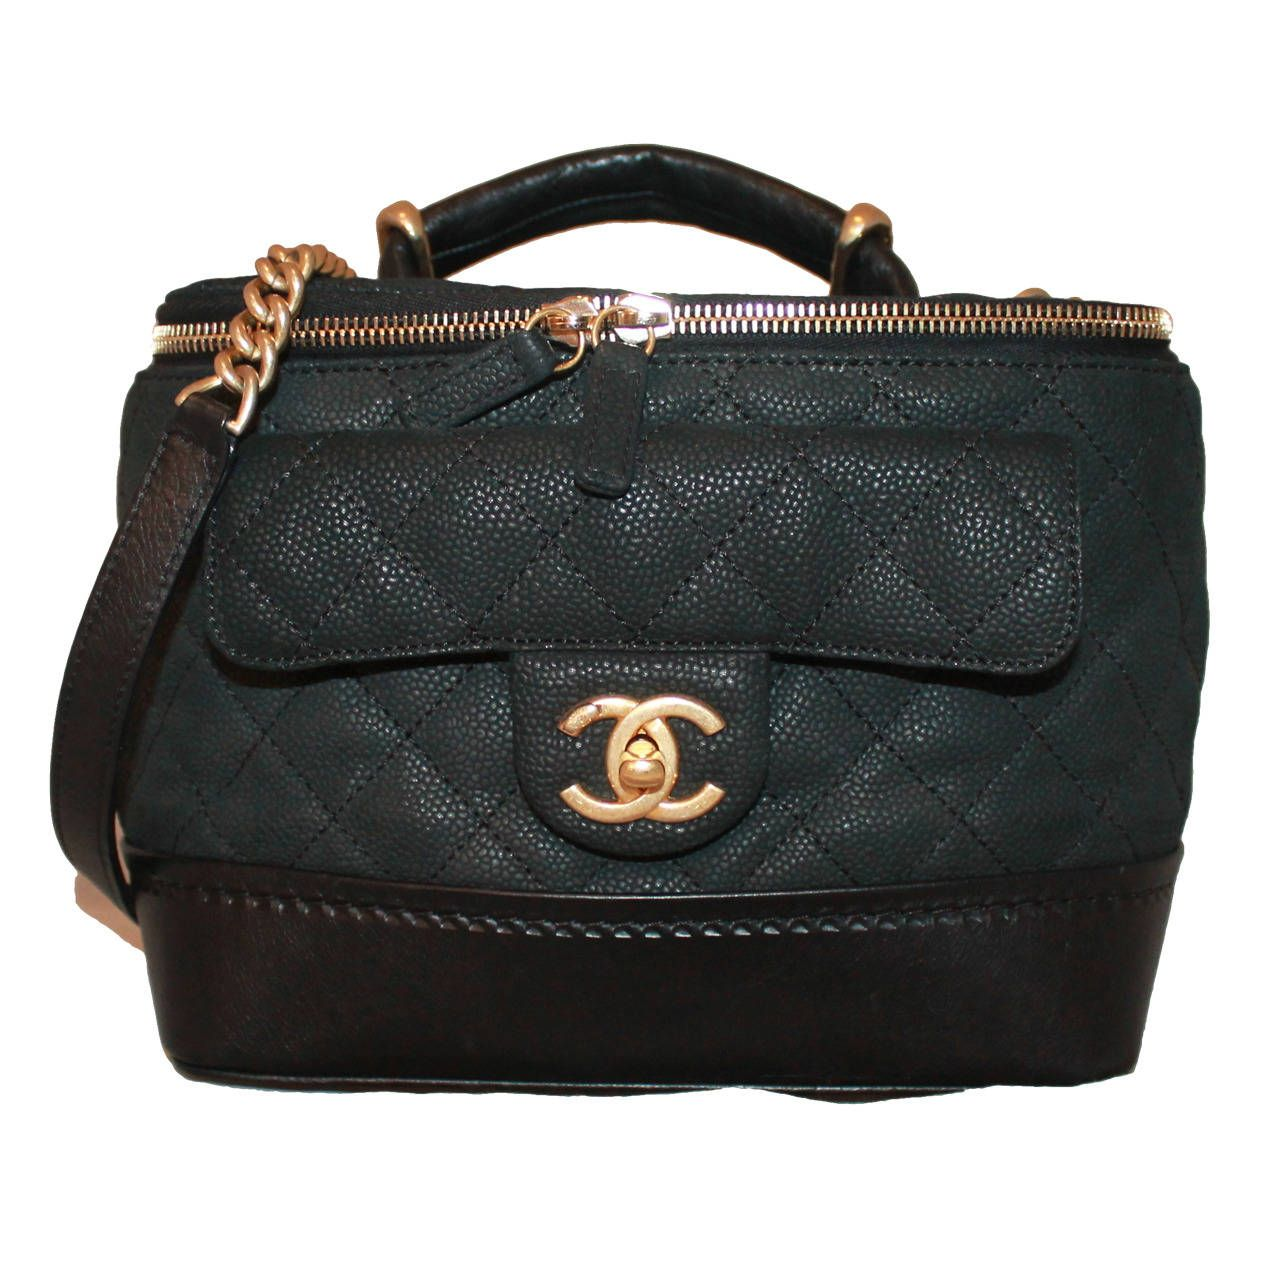 Leather quilted handbags and purses - Bag Chanel Black Leather Quilted